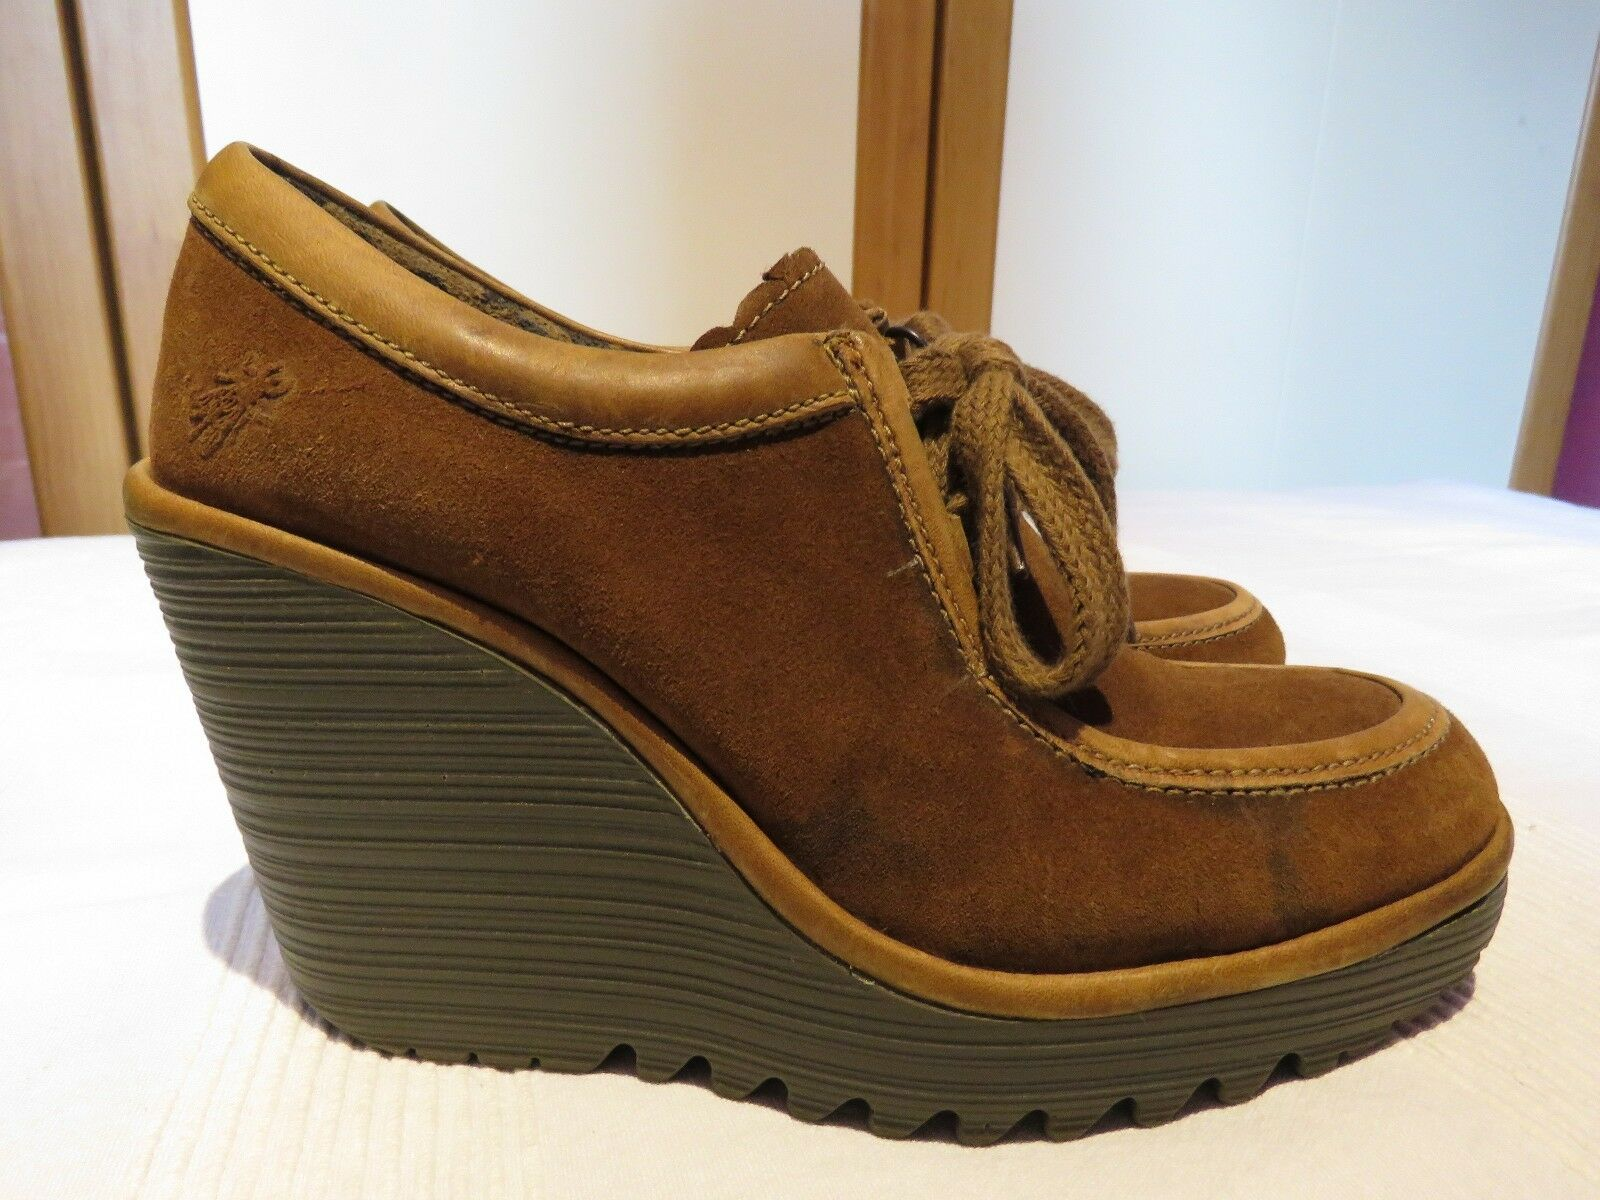 FLY LONDON CHERRY CELY CAMEL SUEDE HIGH WEDGE Schuhe BOOTIES UK 7 EUR 40